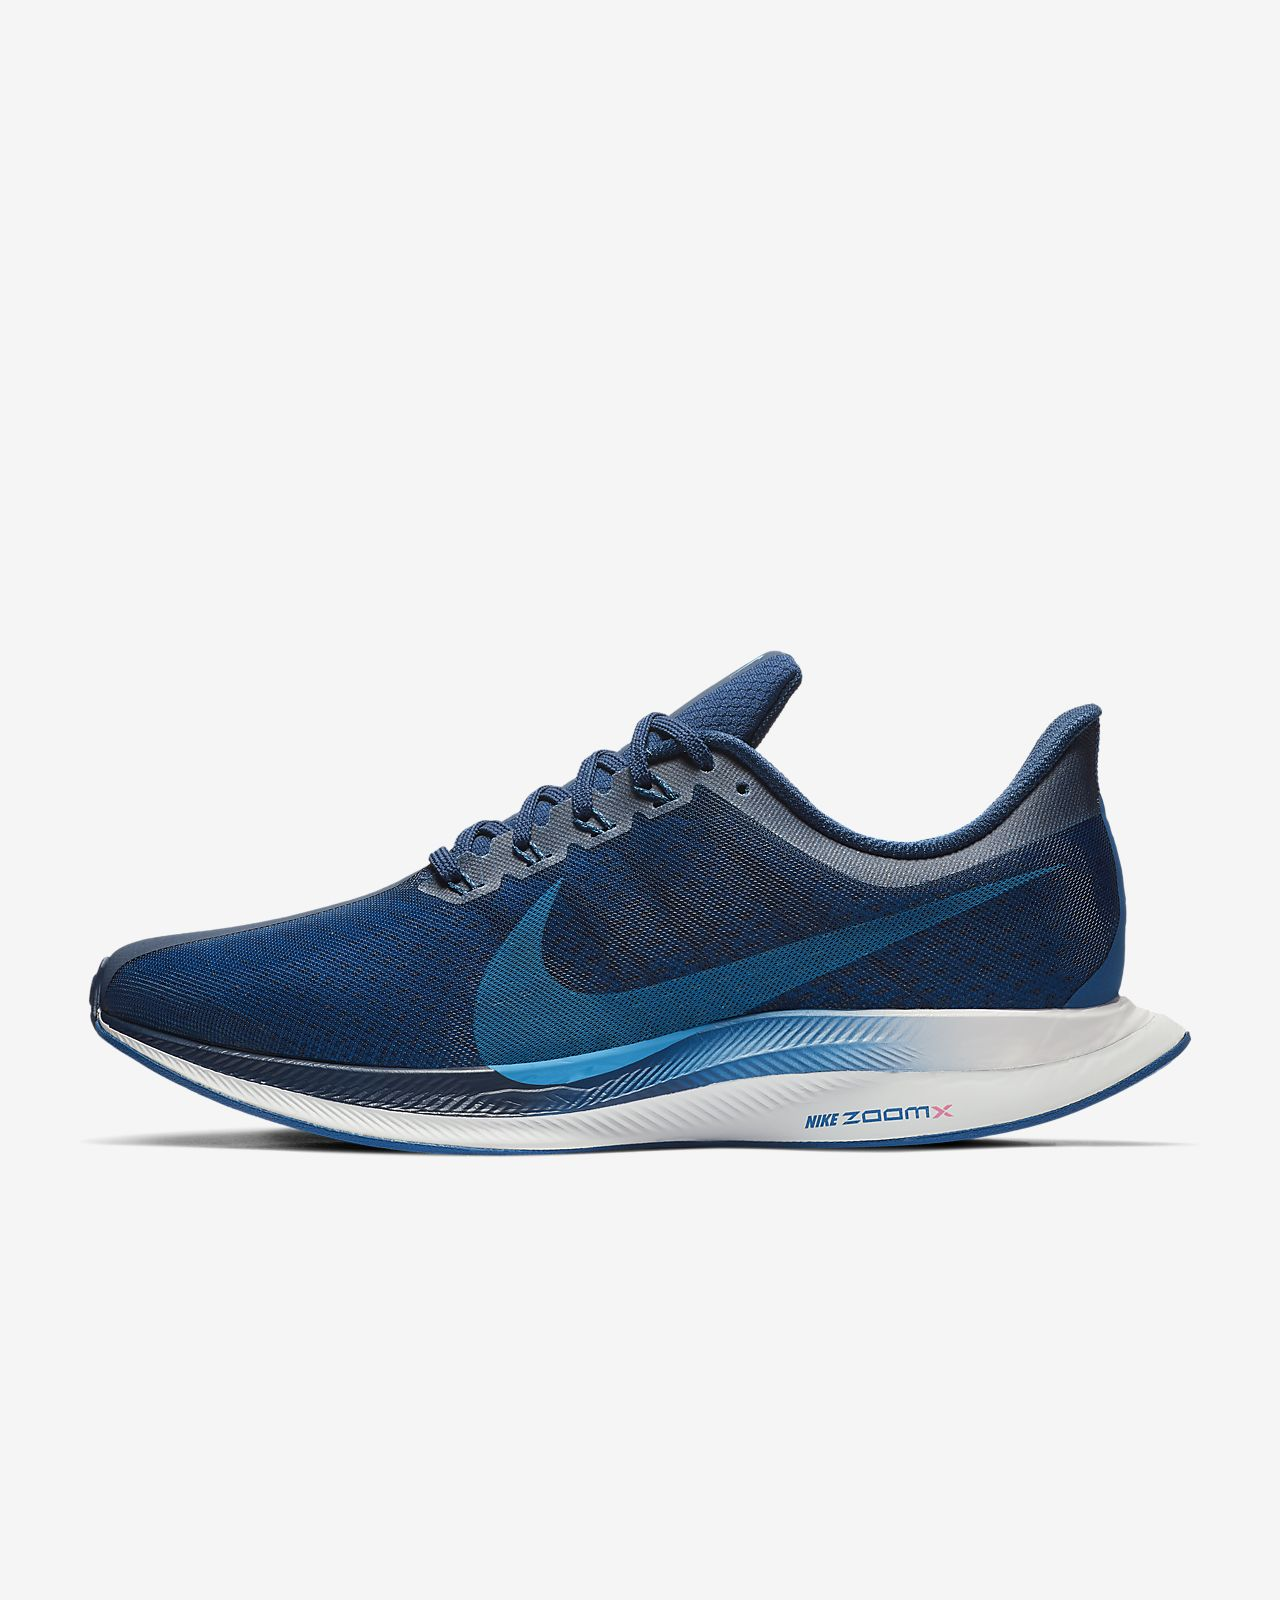 204a77c623dc Nike Zoom Pegasus Turbo Men s Running Shoe. Nike.com